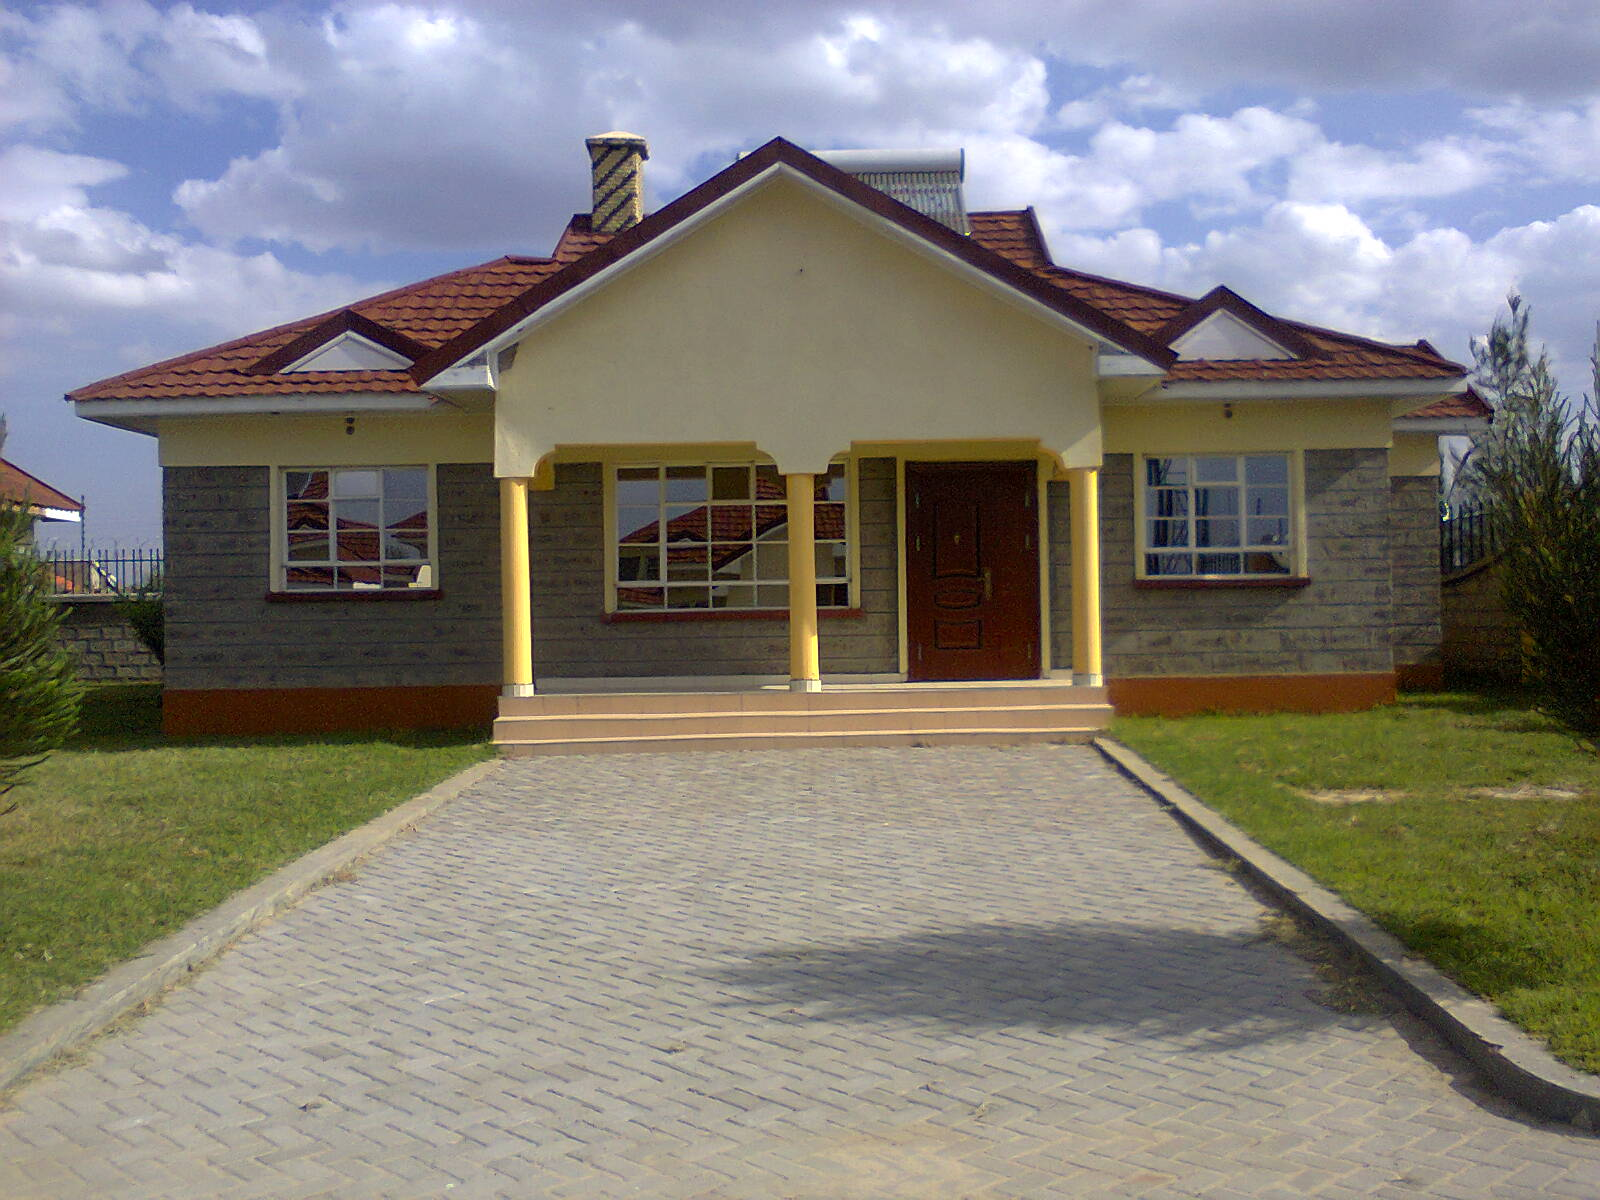 Pictures Of Bungalow Houses In Kenya